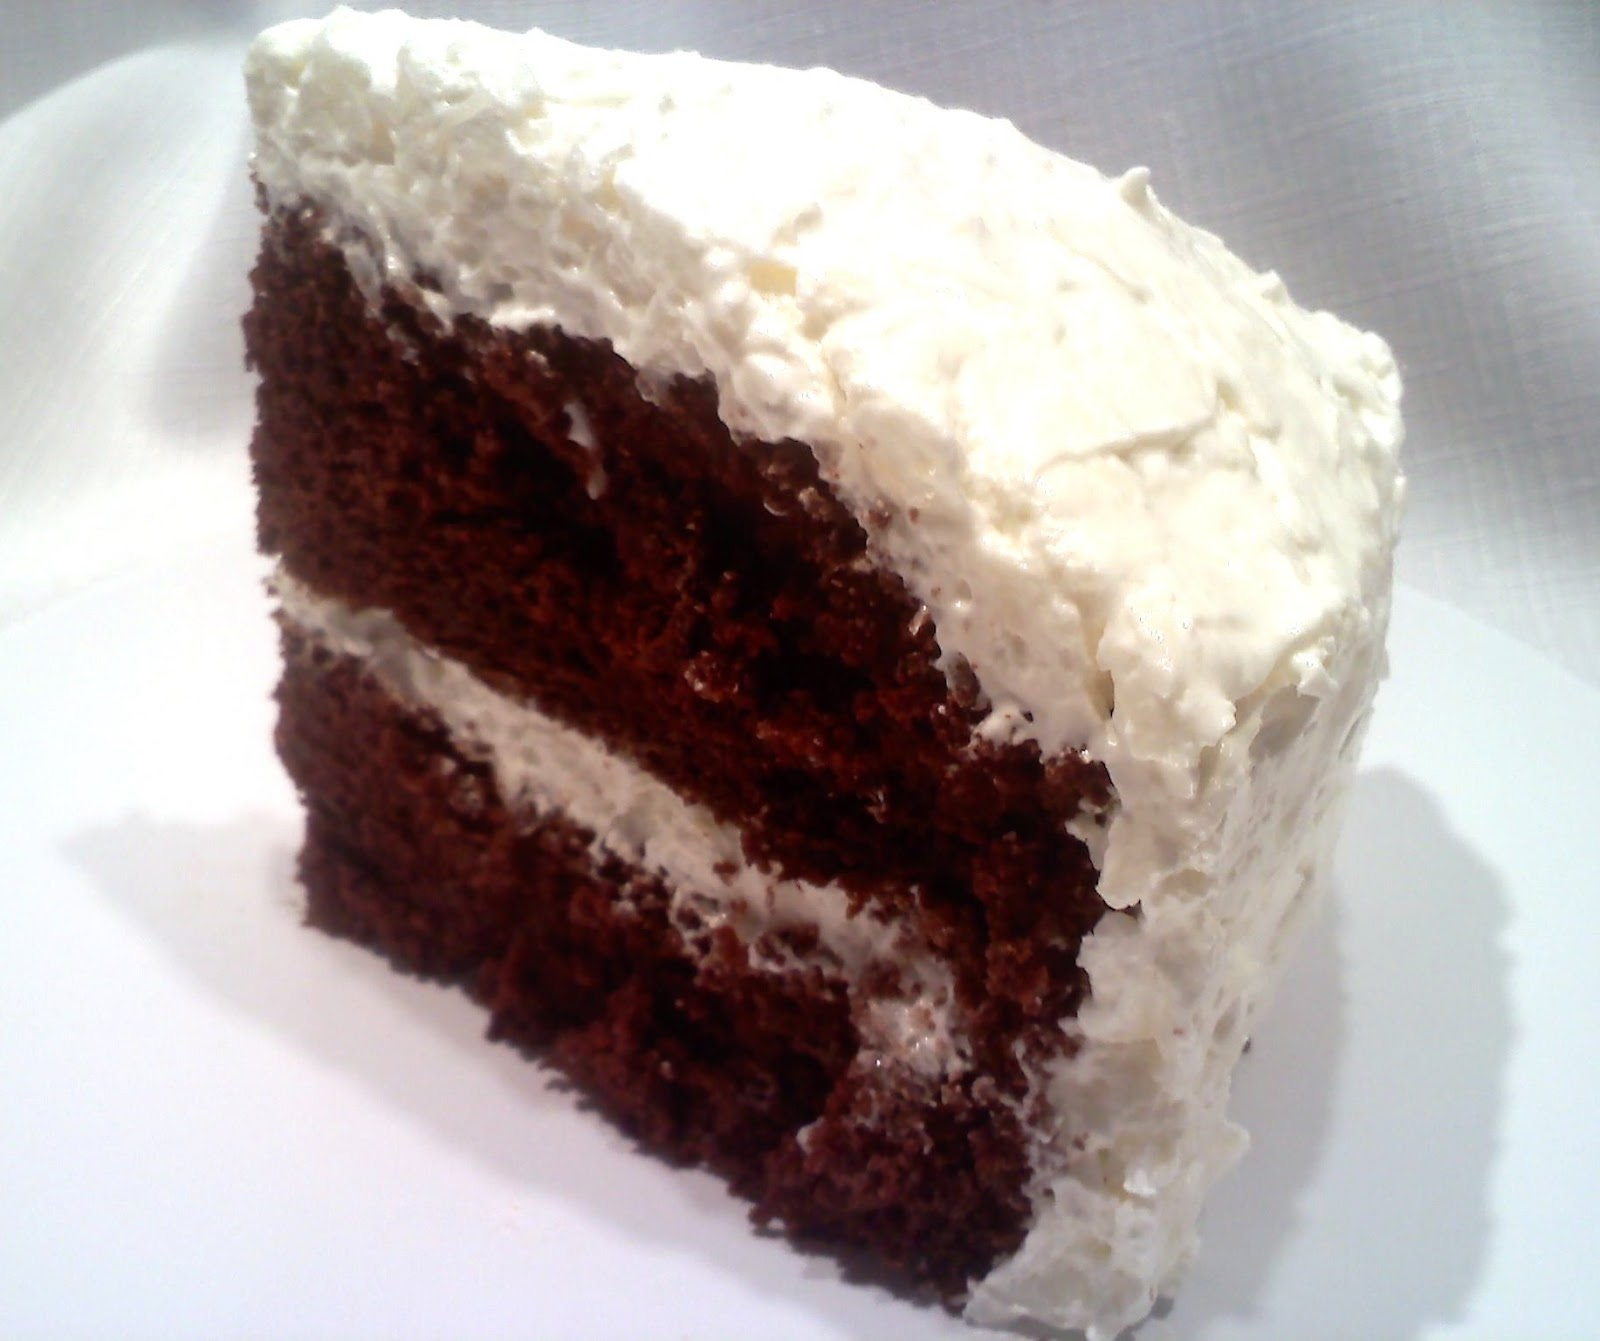 Chocolate Cake With Sour Cream Topping